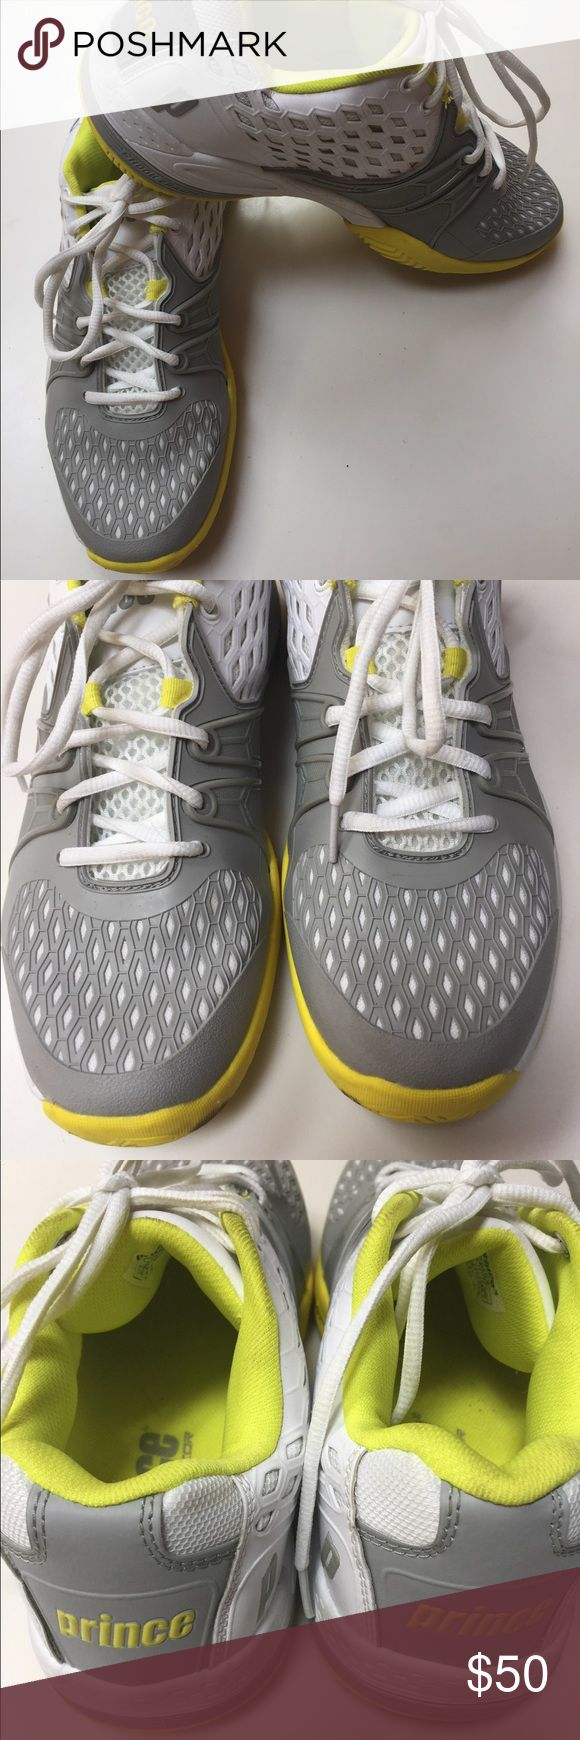 Ladies Prince Tennis Court Shoes size 9.5 Prince Warrior Ladies tennis court shoes worn once!!  Grey white citron. Recommended online to order half size up. Shoe runs true to size so I ordered again in my true size.  These are beautiful shoes.   Retails 109.99. Comes with grey laces as well. Prince Shoes Athletic Shoes